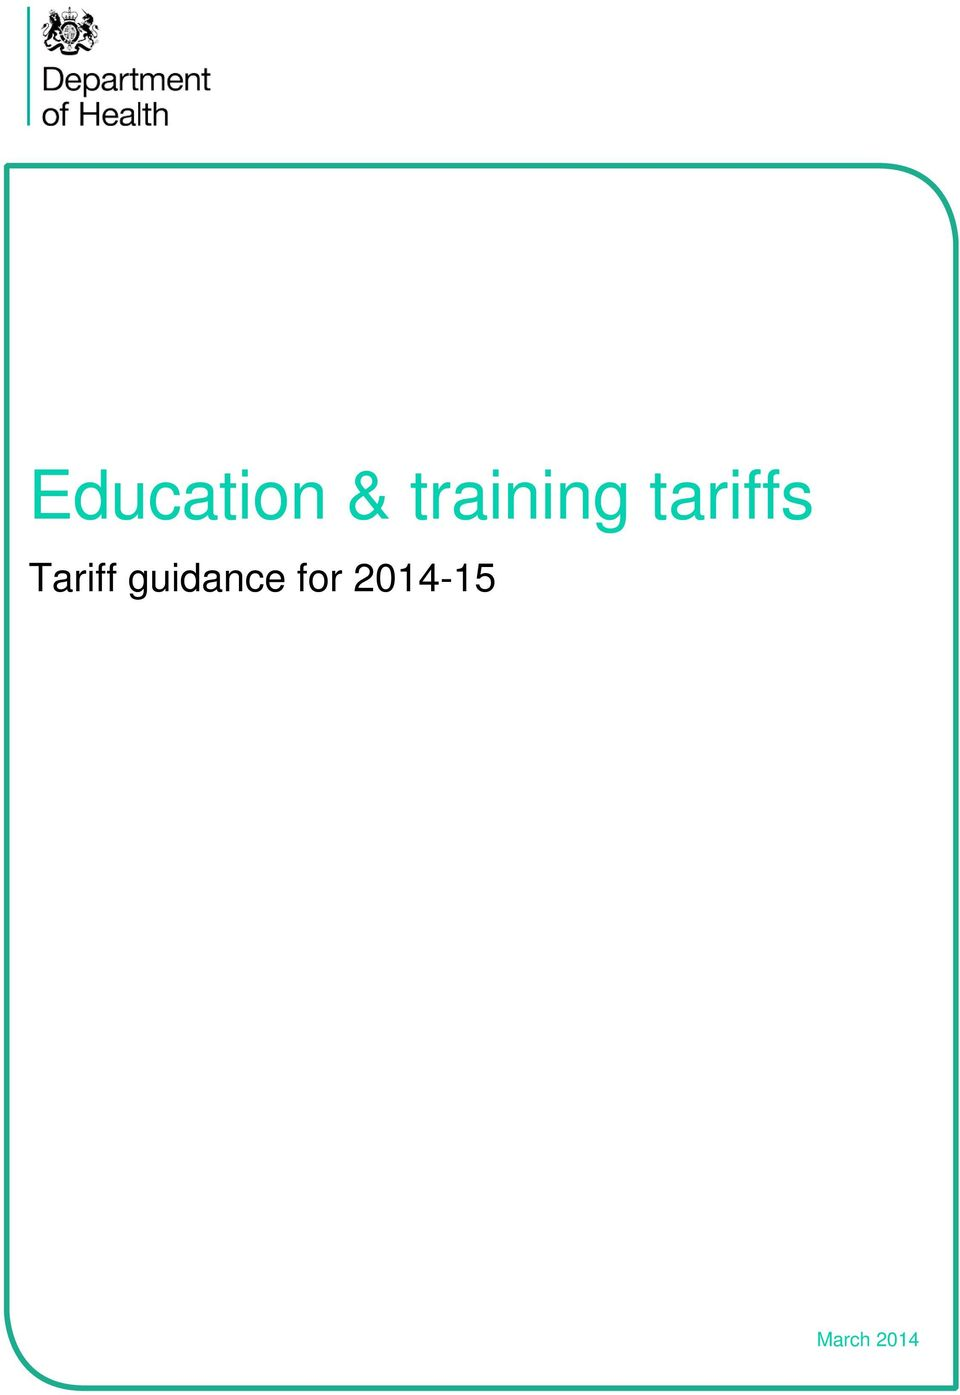 Tariff guidance